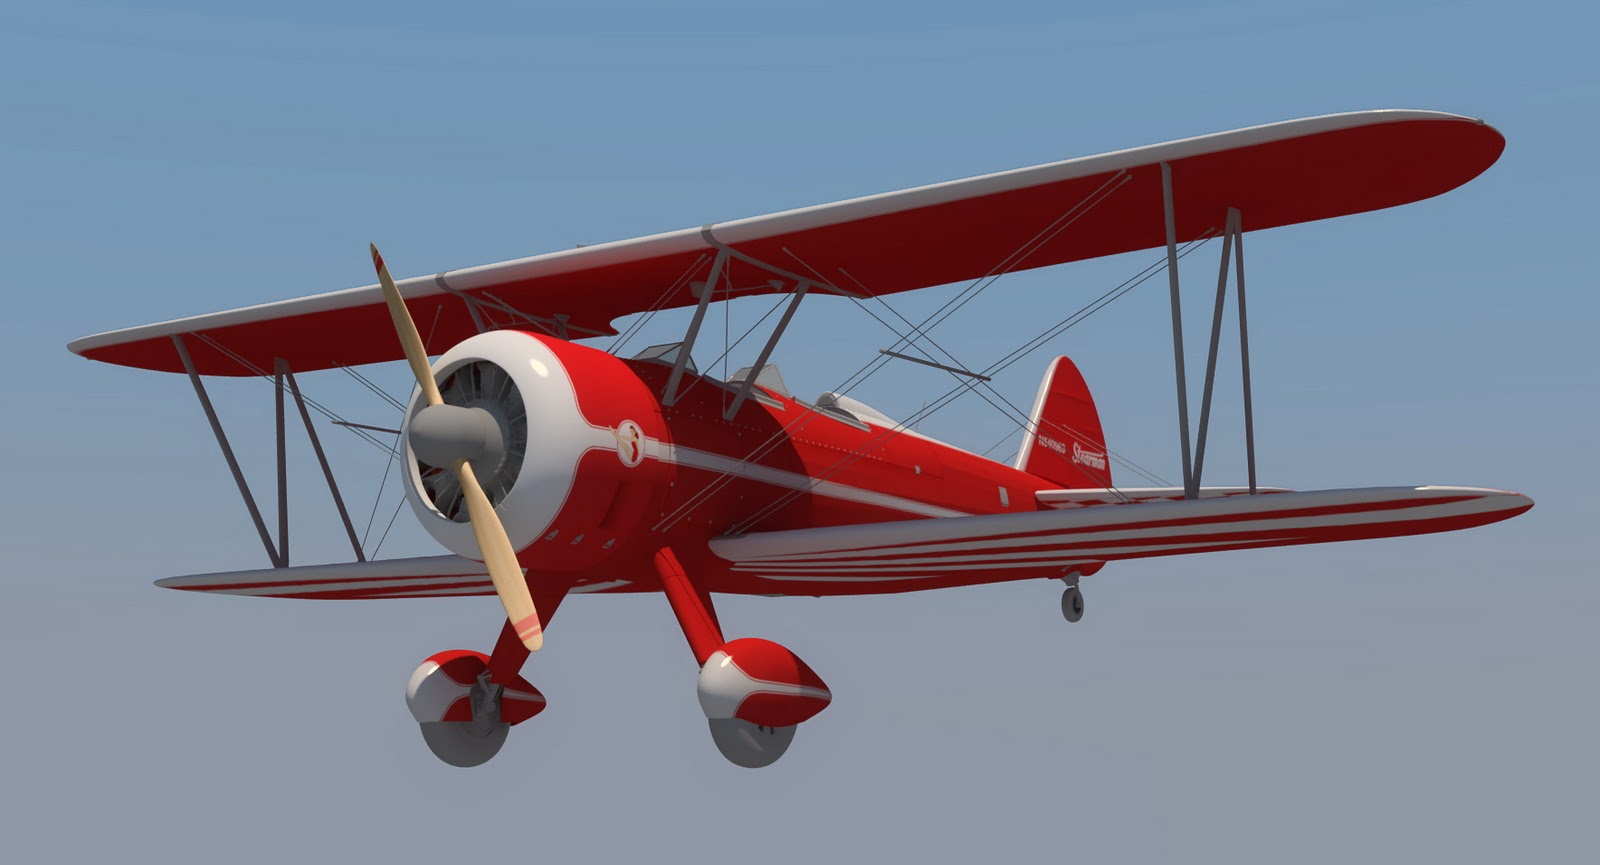 Stearman Biplane Model on 2010 12 01 Archive